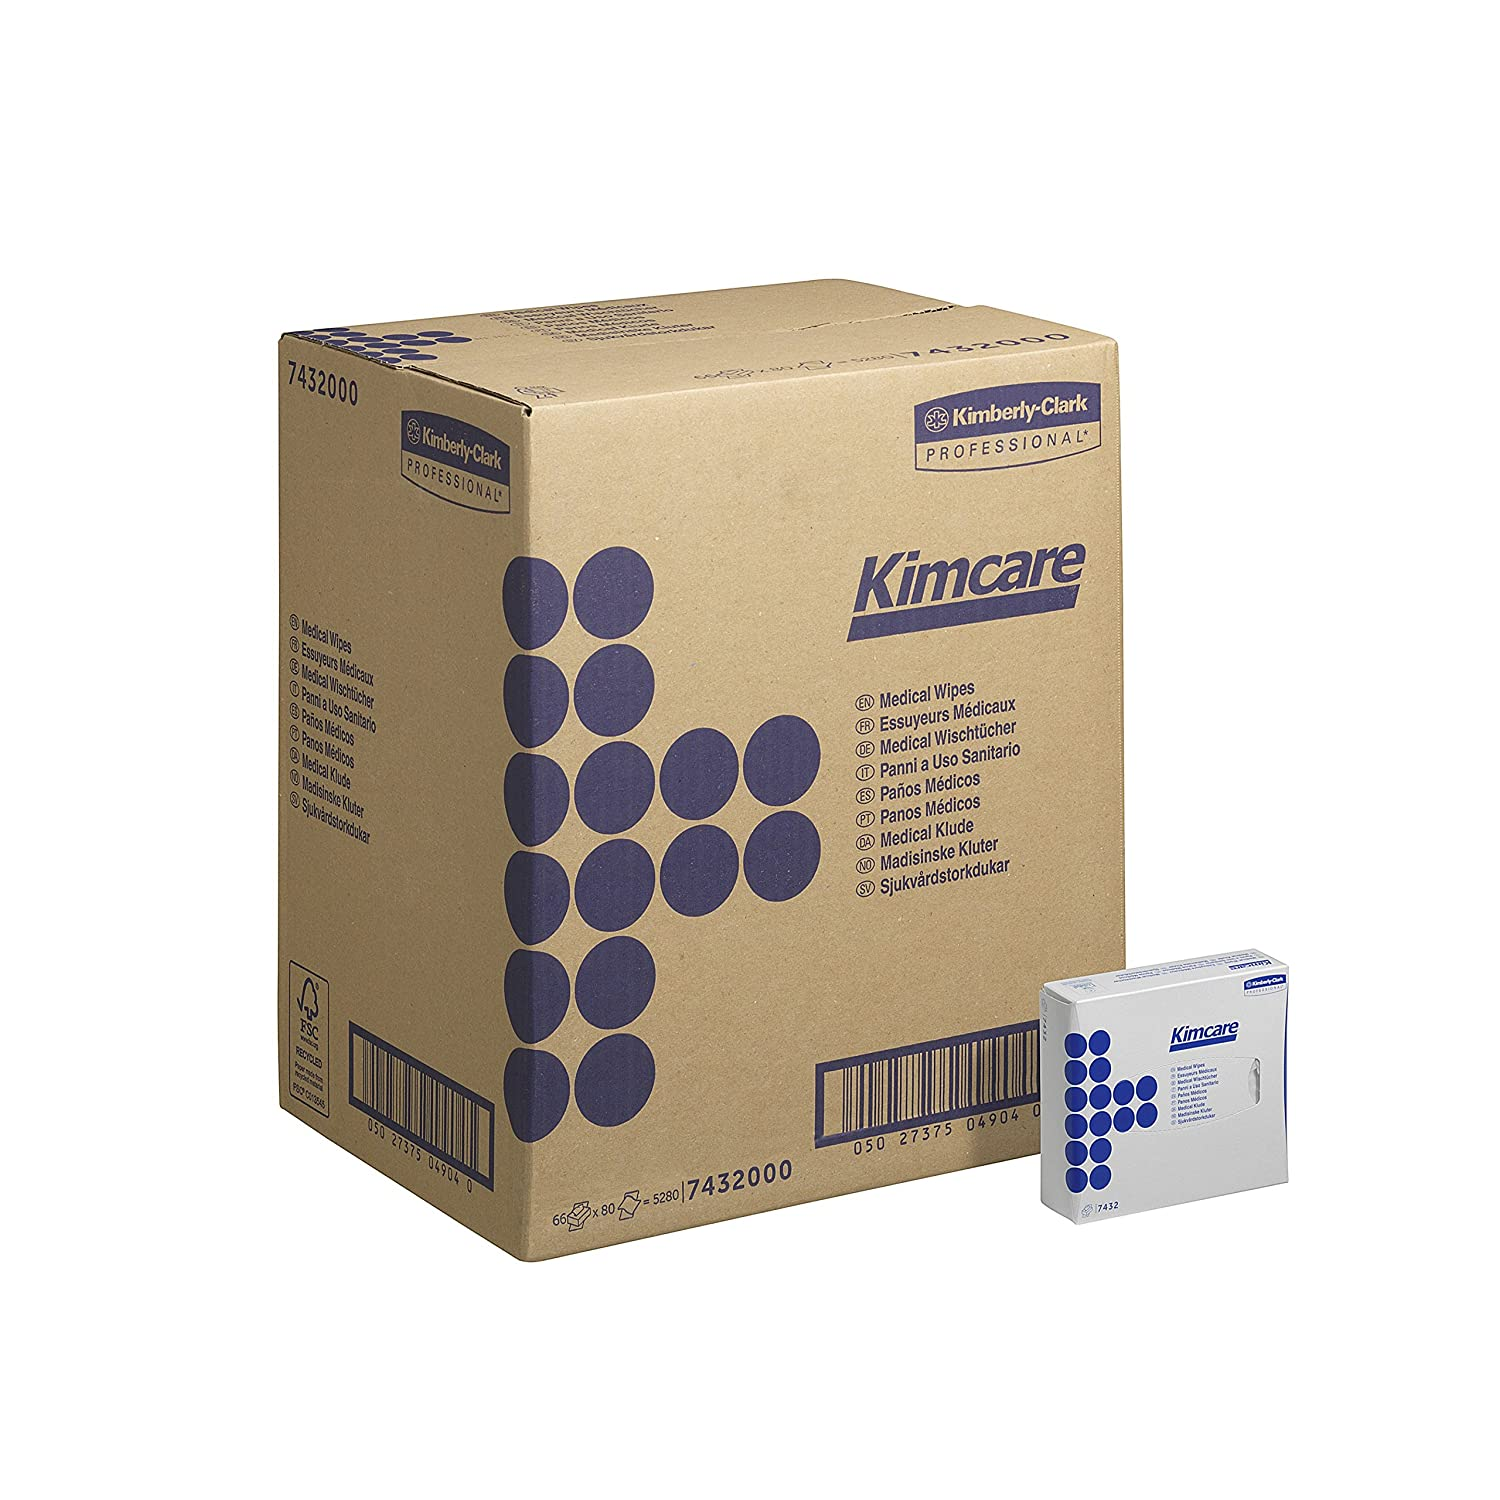 KIMCARE* Medical Wipes 7432 - 80 interfolded, white sheets per carton (pack contains 66 cartons) Kimberly Clark - Professional